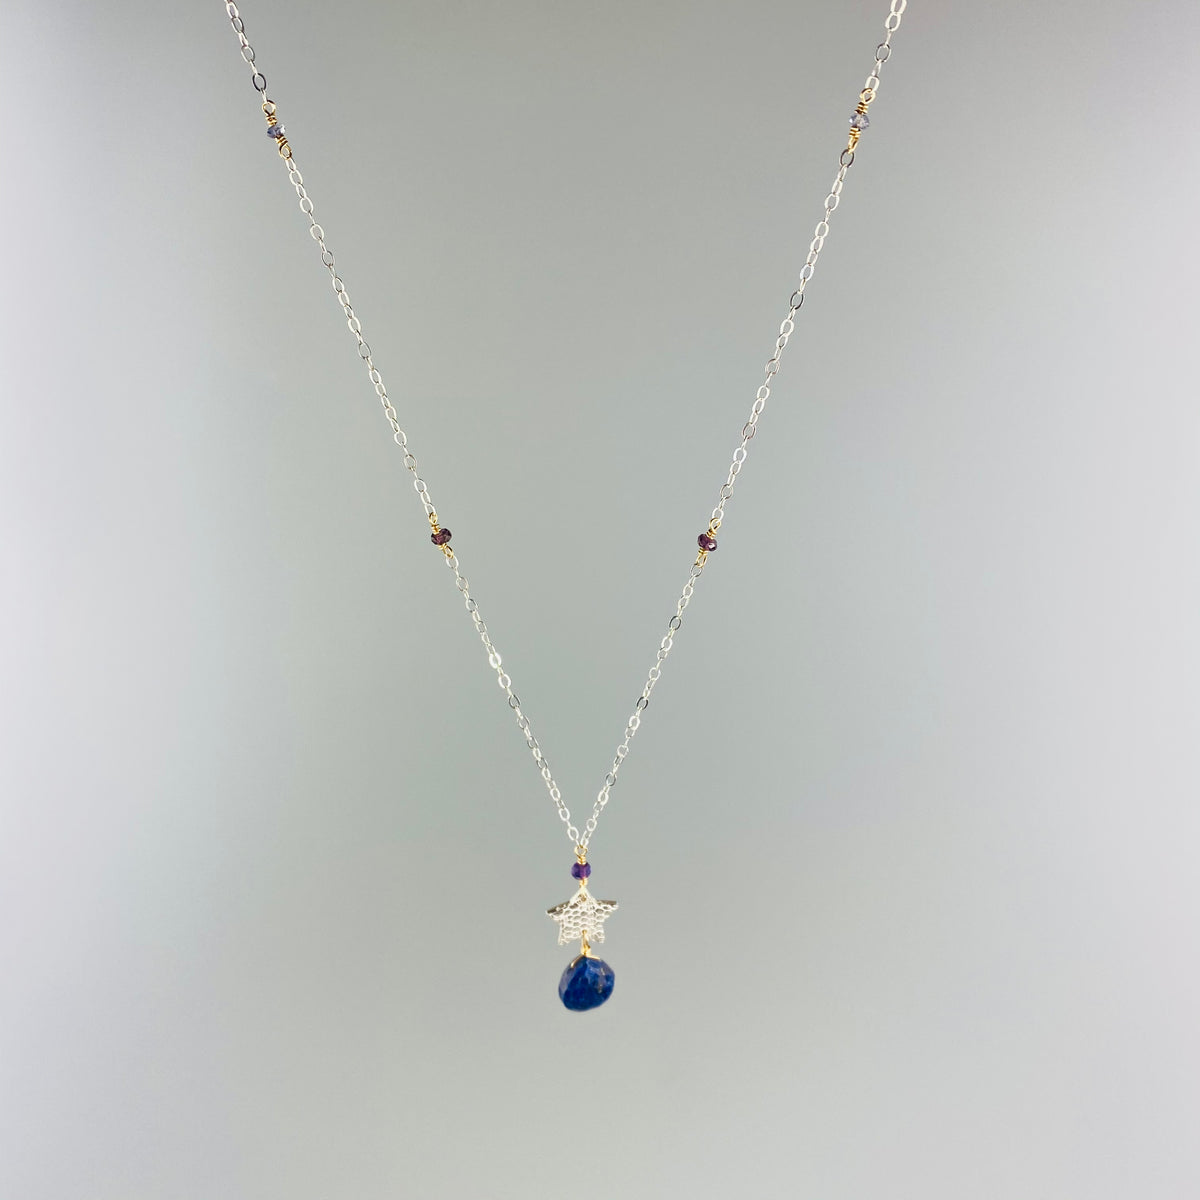 Star & Lapis Drop Necklace - Heart of the Home PA